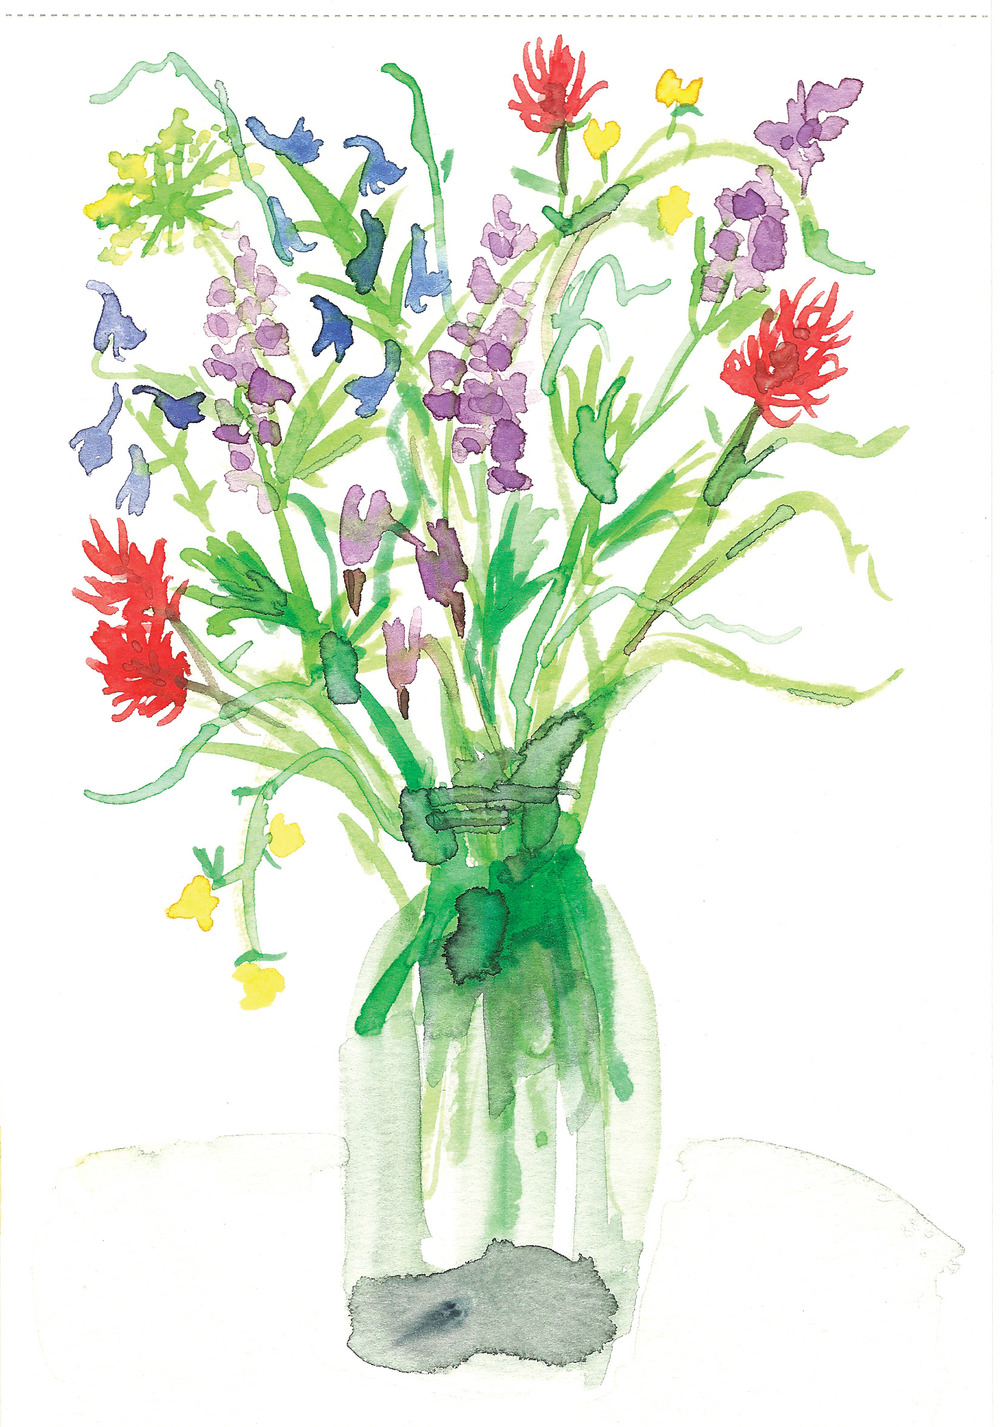 flowers in jar.jpg